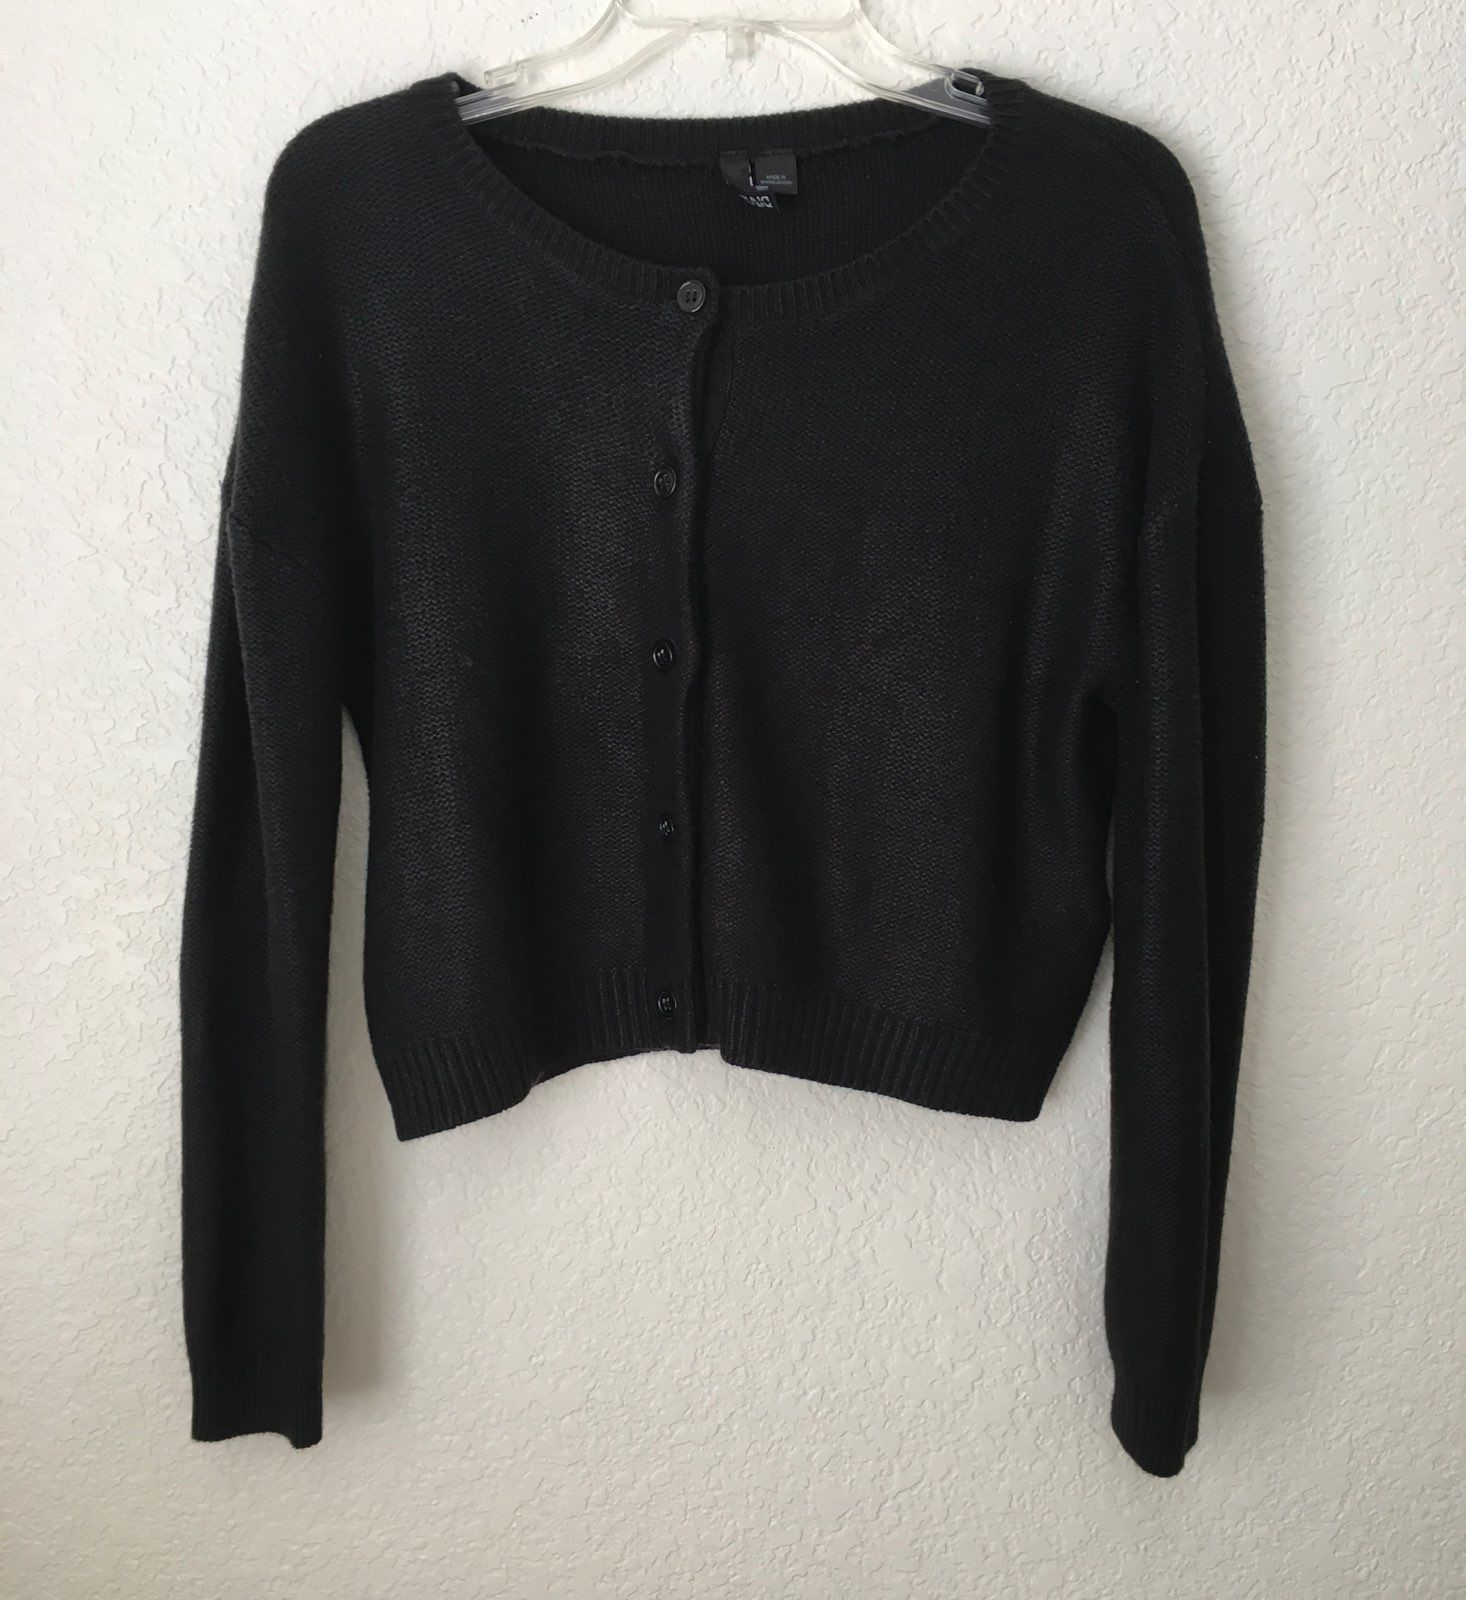 H&M Cropped Knitted Black Cardigan - Mercari: BUY & SELL THINGS ...